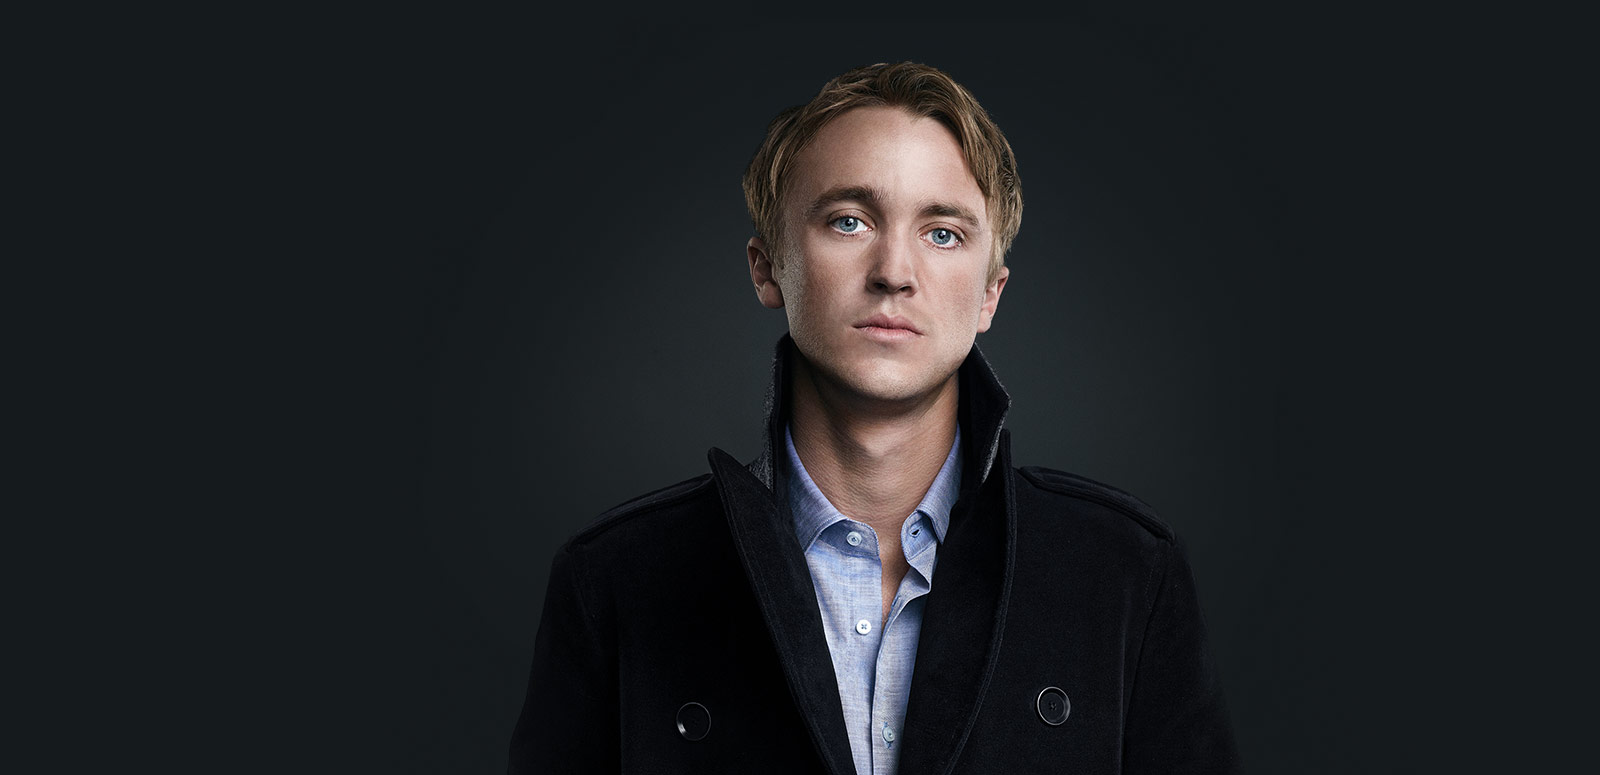 'The Flash' Adds Tom Felton as Series Regular